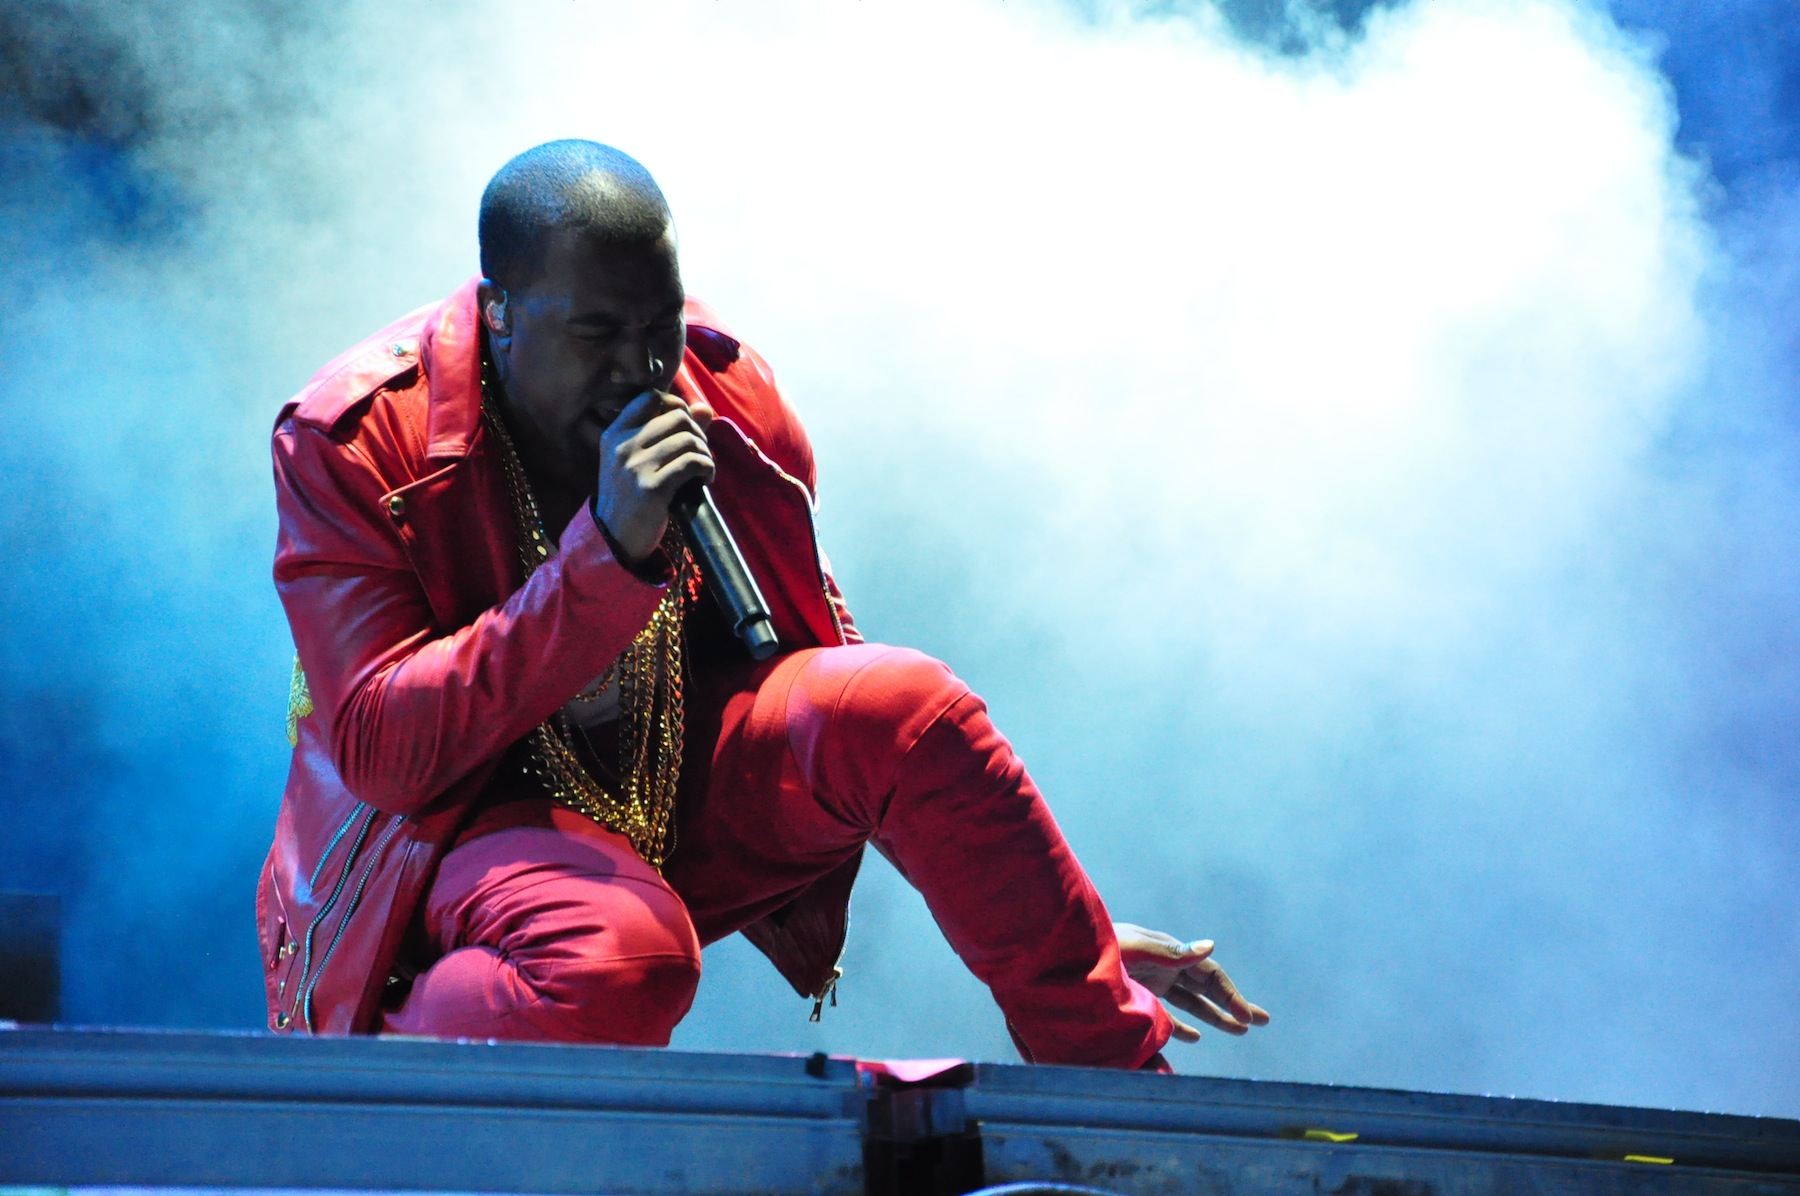 kanye2 Kanye West Is Now Getting Sued Over His Latest Album